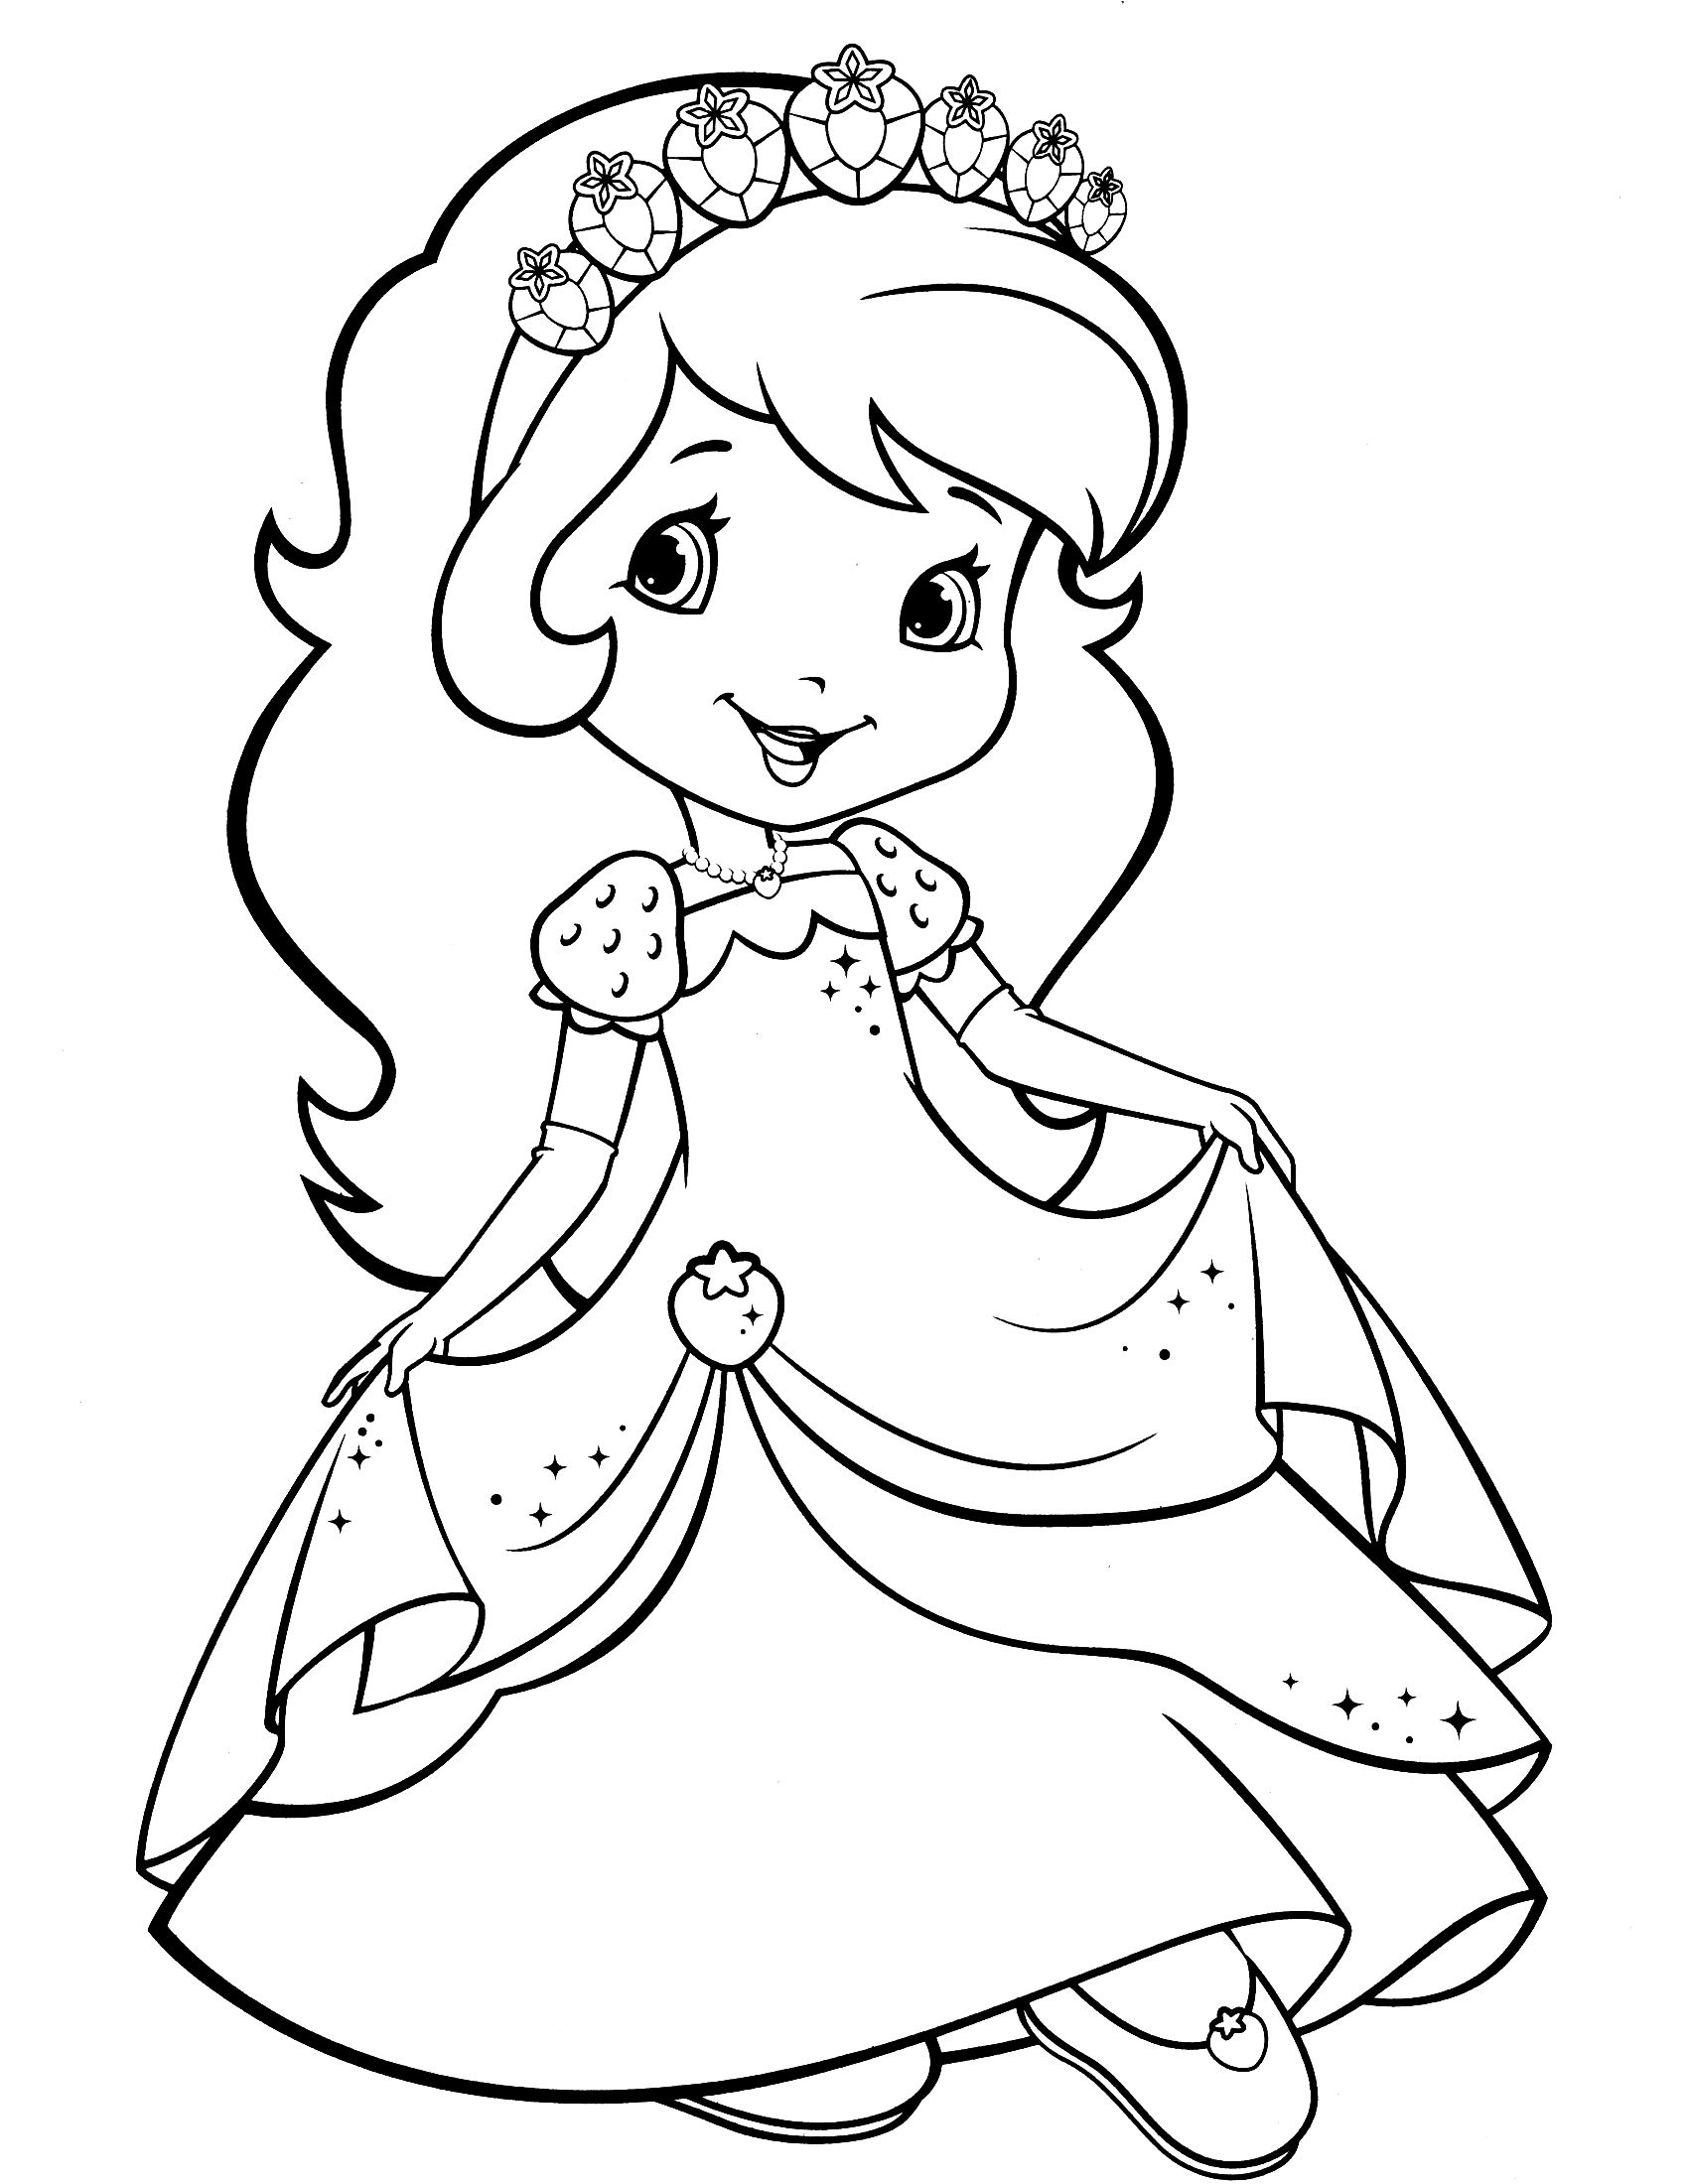 picture relating to Strawberry Shortcake Printable Coloring Pages named strawberry shortcake coloring web page coloring web pages